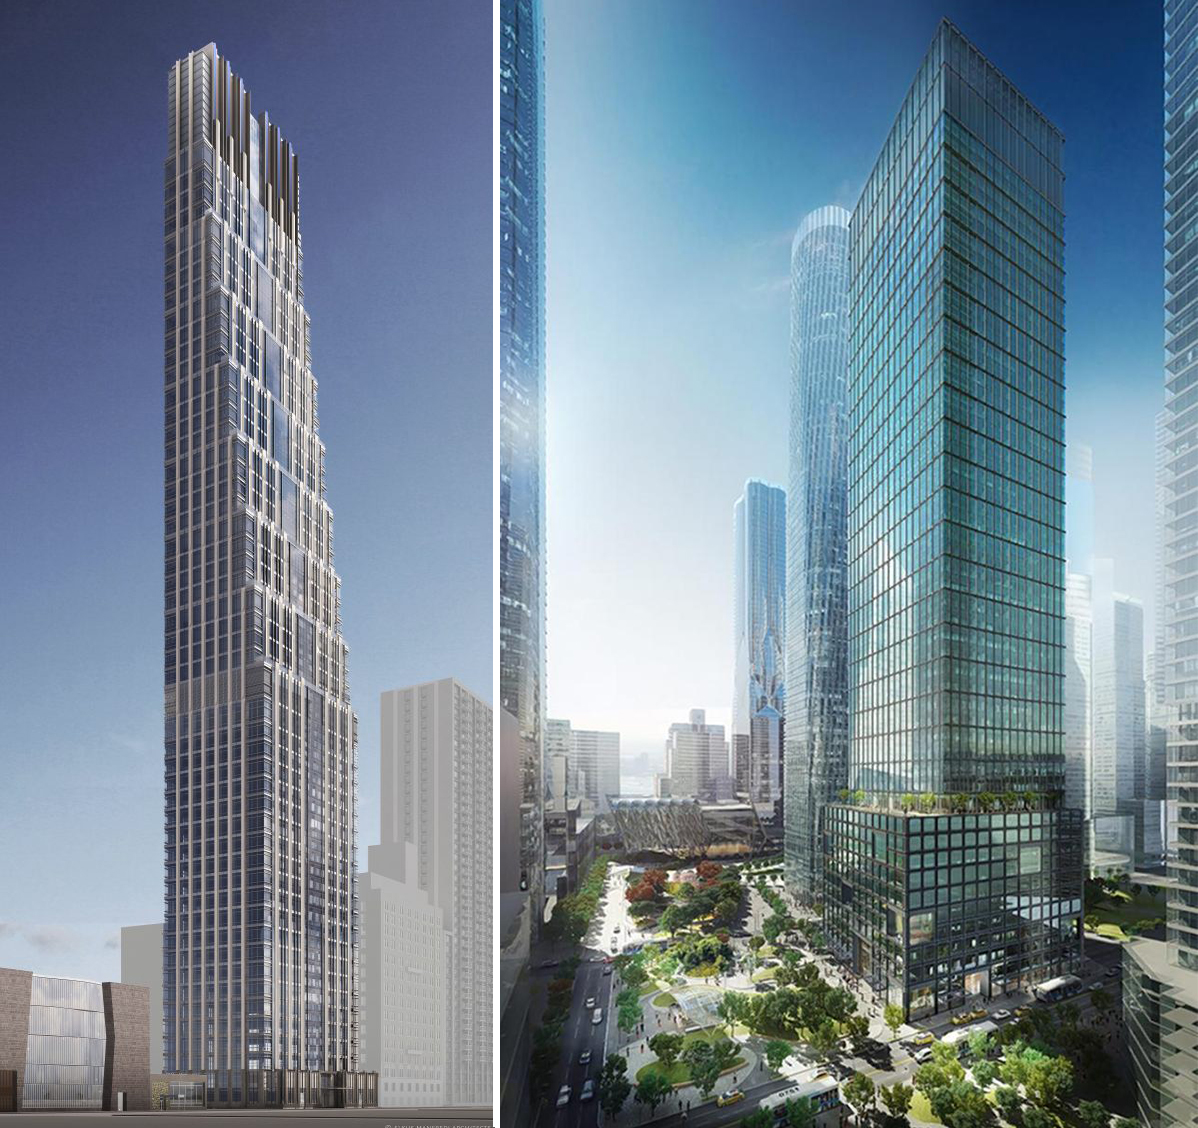 200 Amsterdam Avenue and 55 Hudson Yards